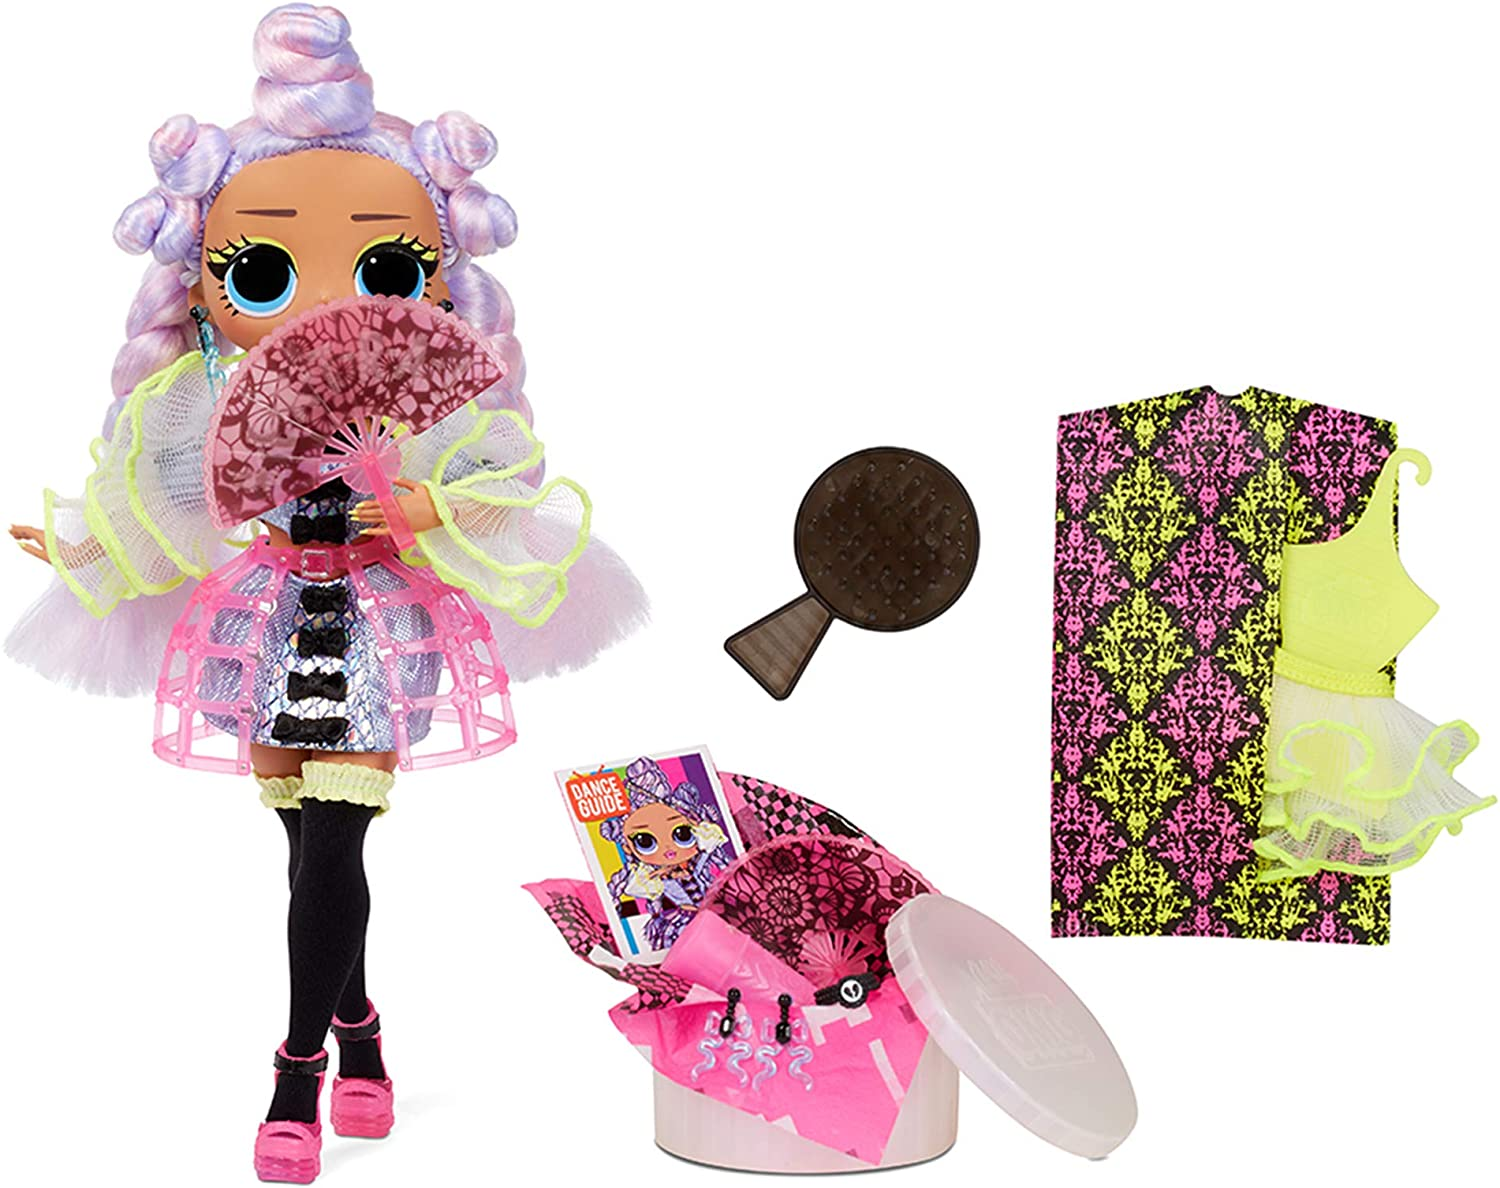 LOL OMG Dance Dance Dance Miss Royale Doll - The Doll and the Accessories